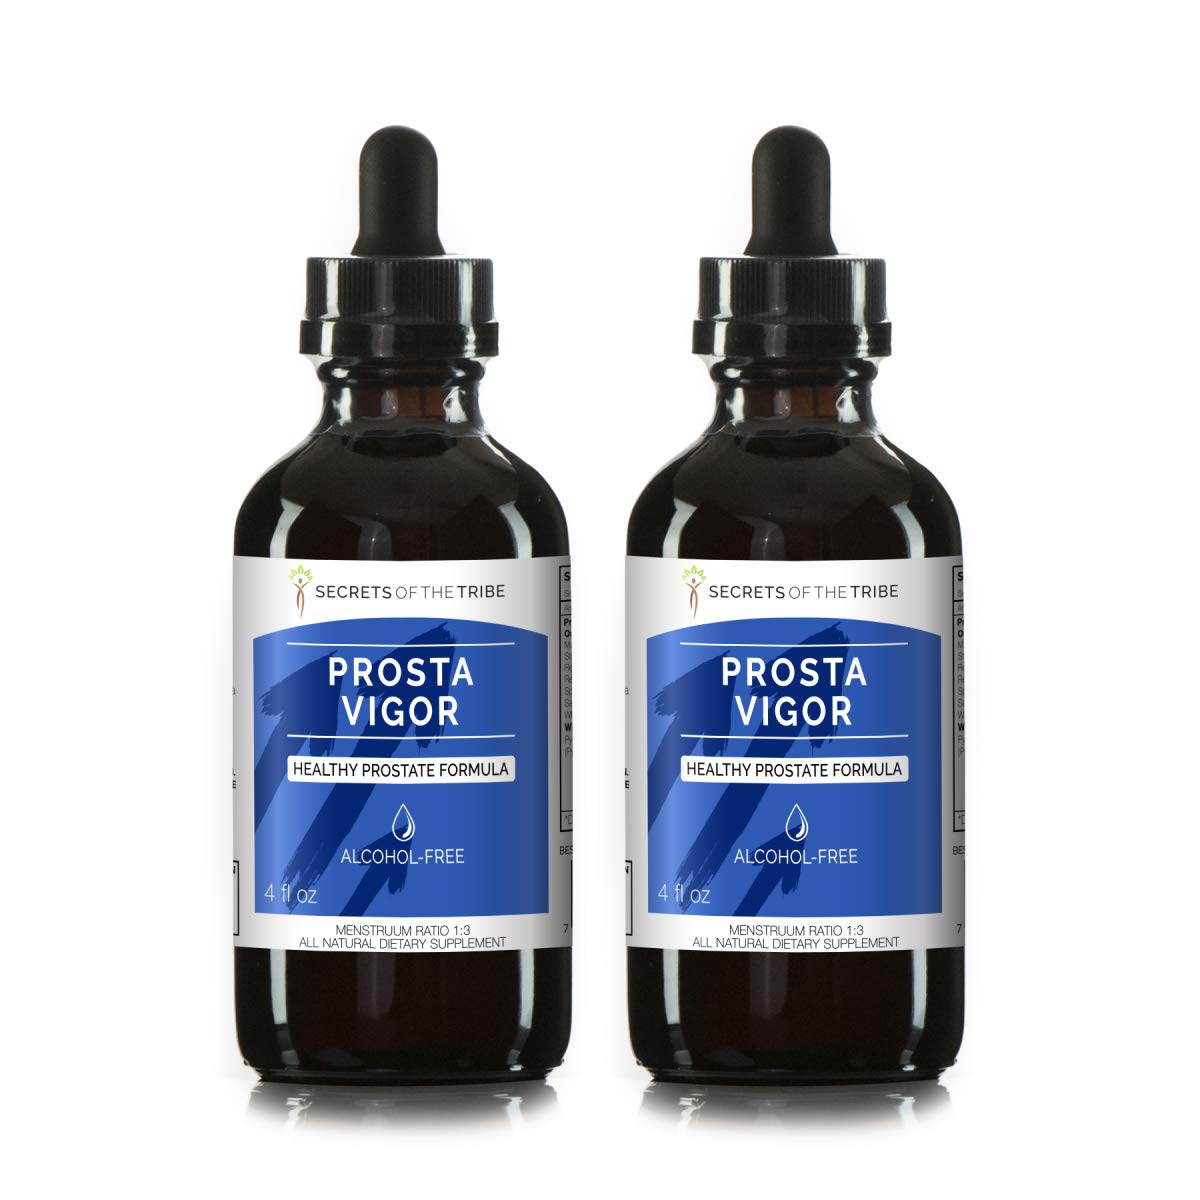 Prosta Vigor Alcohol-Free, Glycerite Pygeum, Maca, Stinging Nettle, Reishi Mushroom, Red Clover, Spearmint, Saw Palmetto, White Peony. Tincture Herbal Extract Healthy Prostate Formula 2×4 OZ